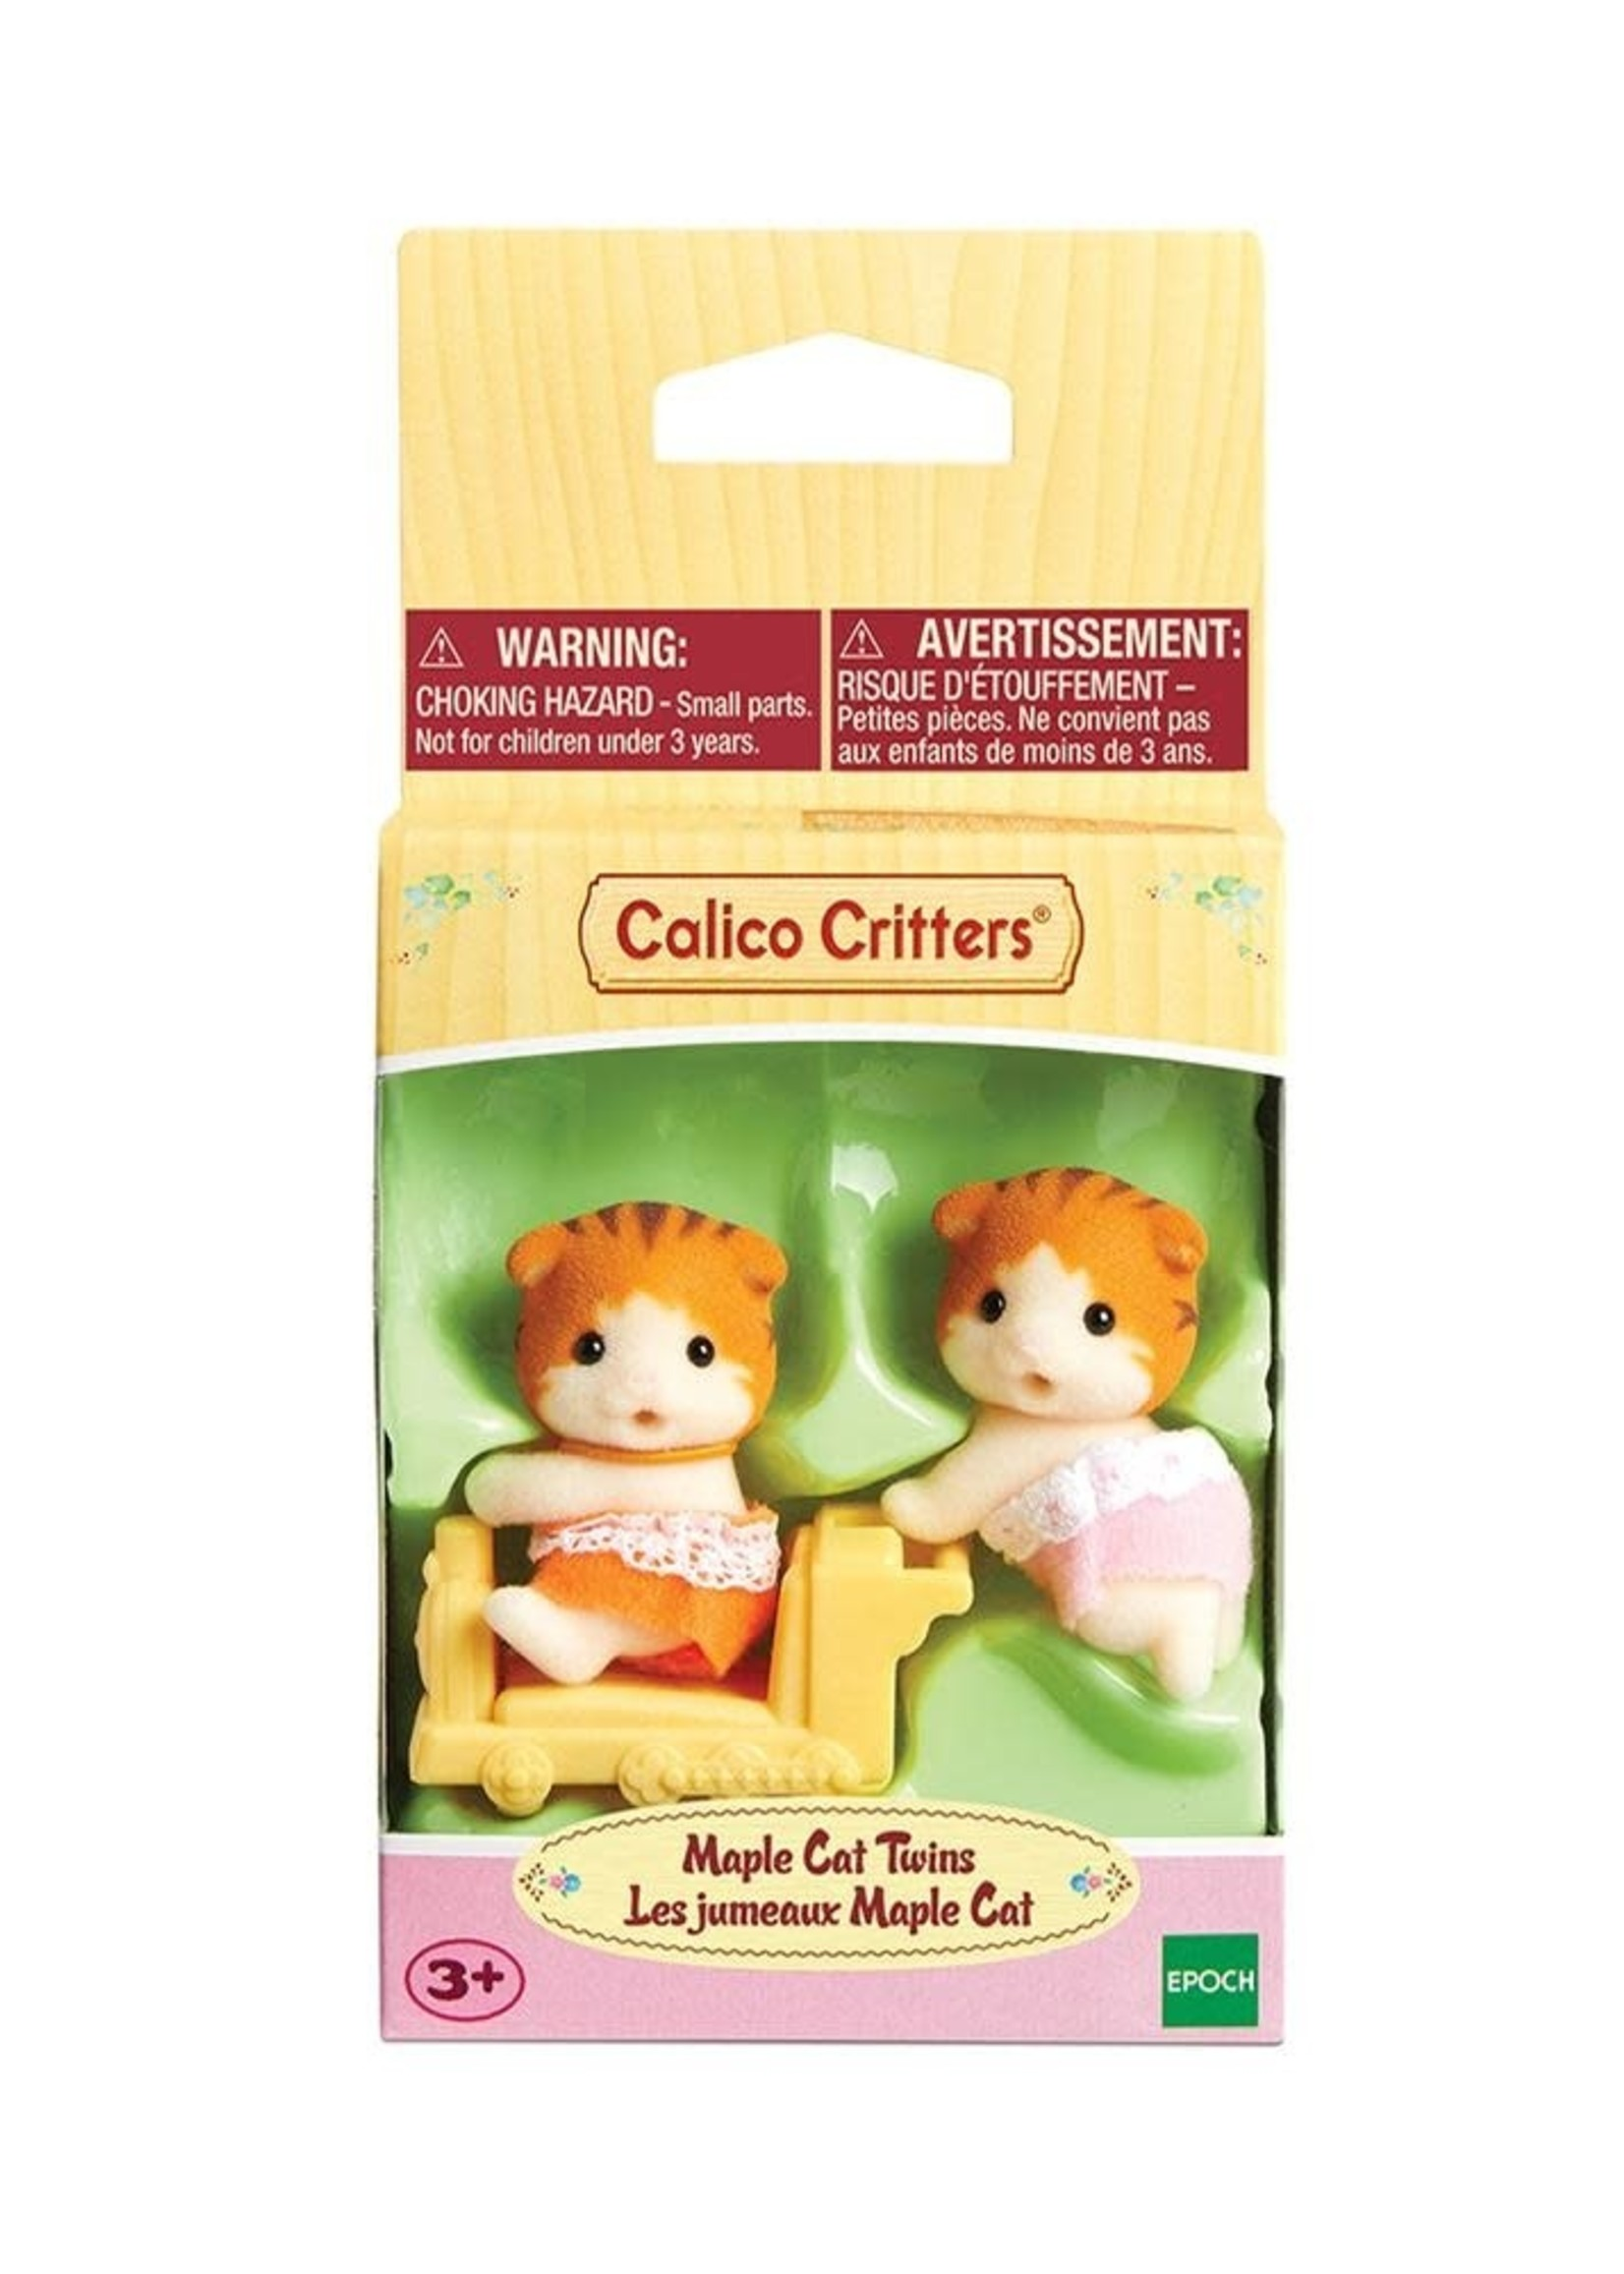 Calico Critters Maple Cat Twins